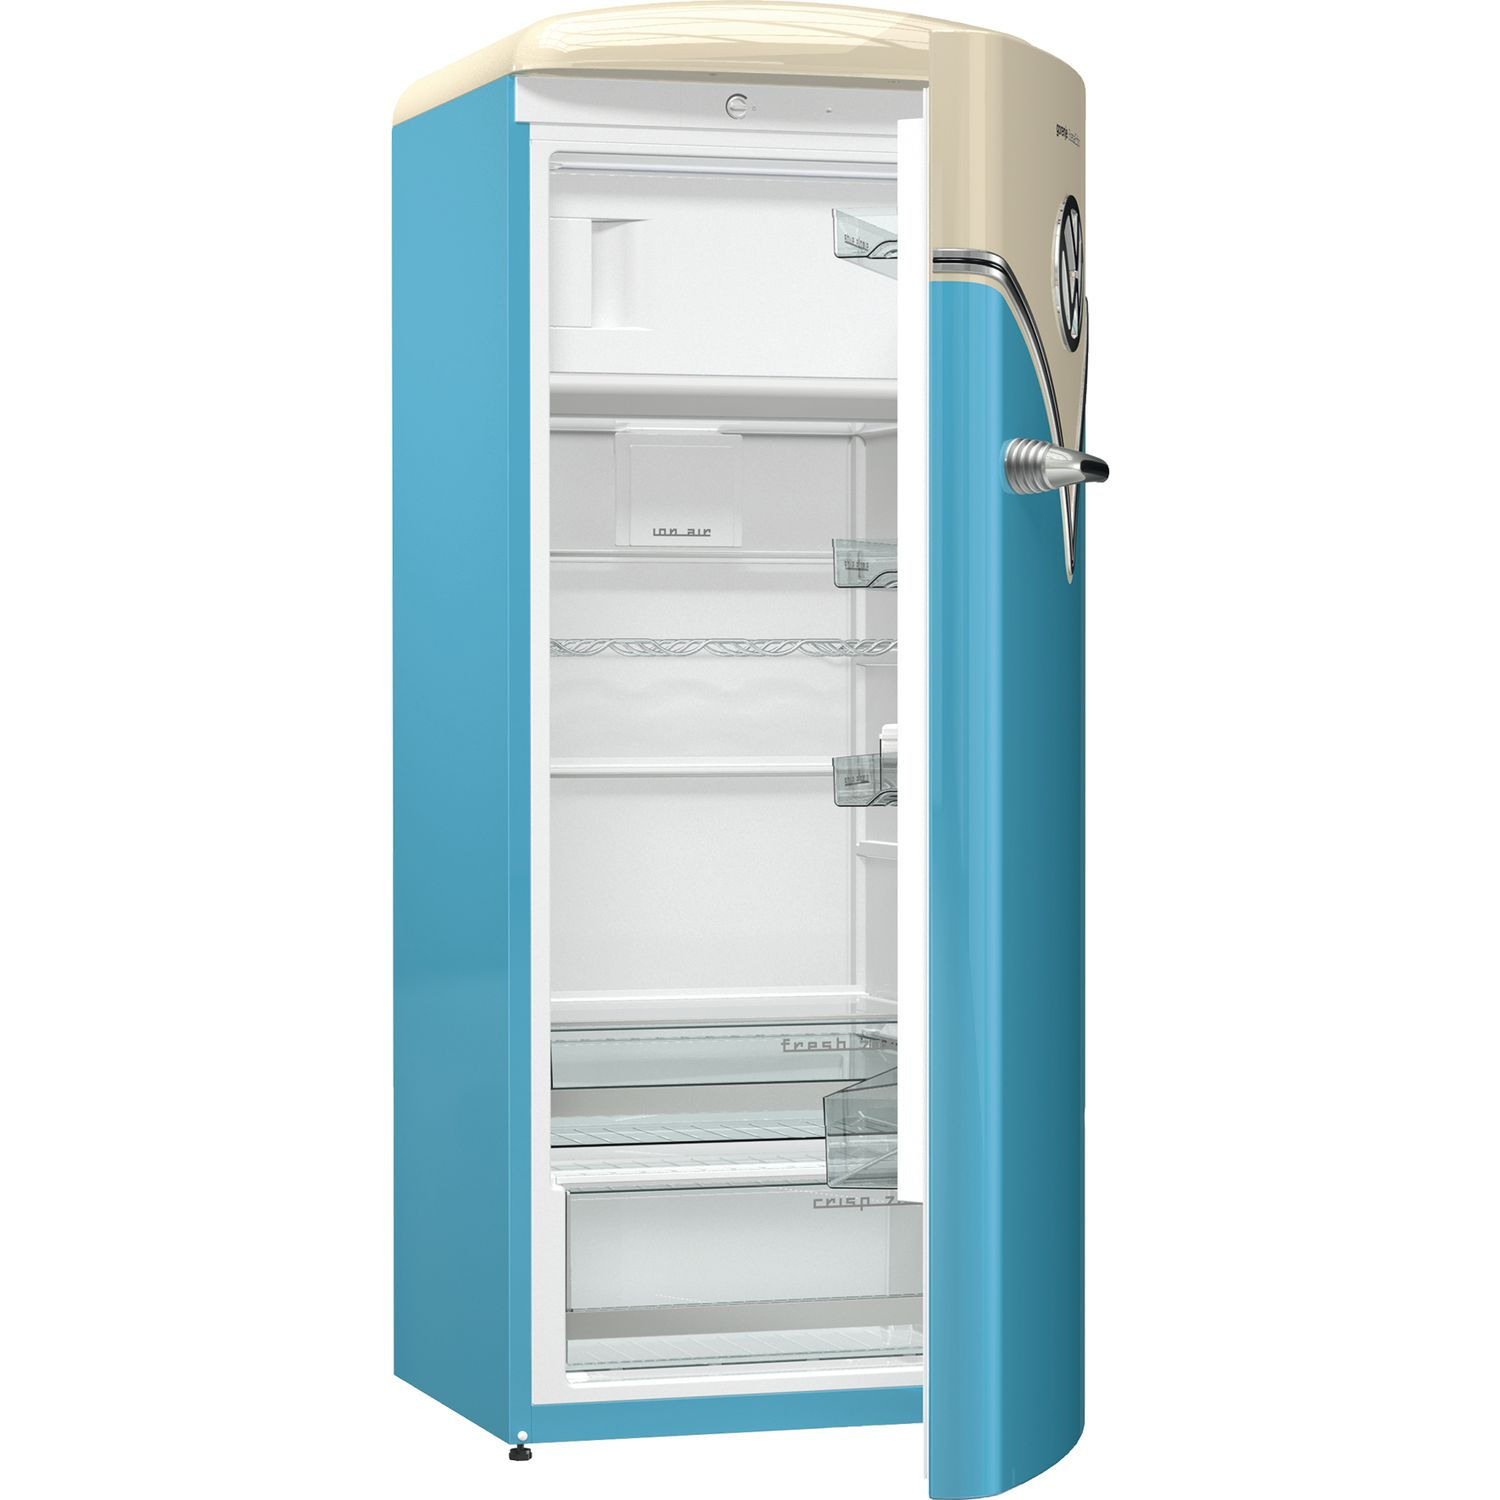 gorenje stand k hlschrank obrb 153 bl vw bulli ocean blue 154 cm hoch. Black Bedroom Furniture Sets. Home Design Ideas